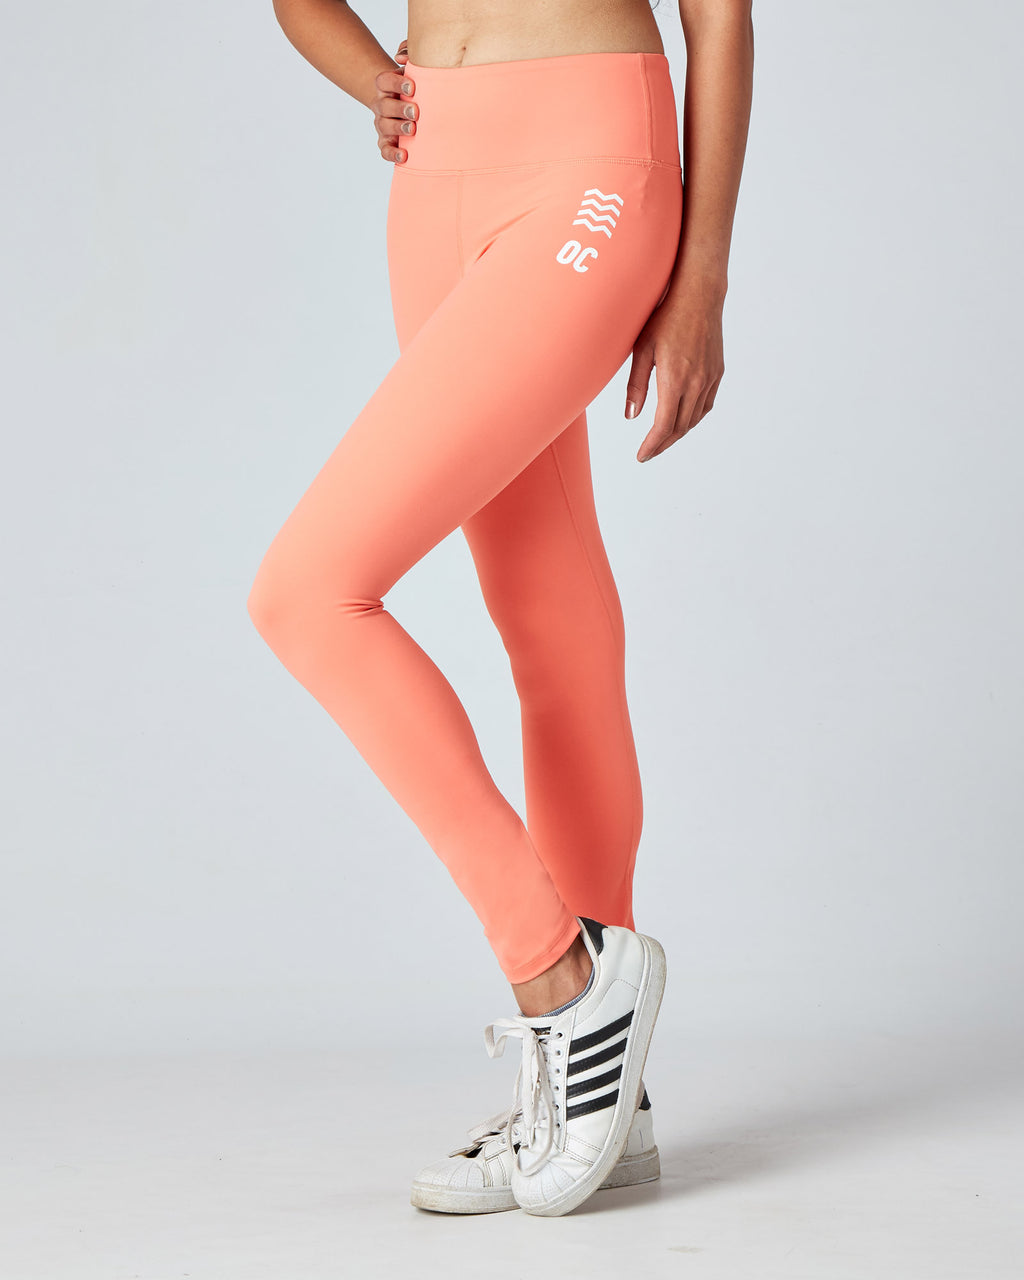 OC Eco Coral Leggings